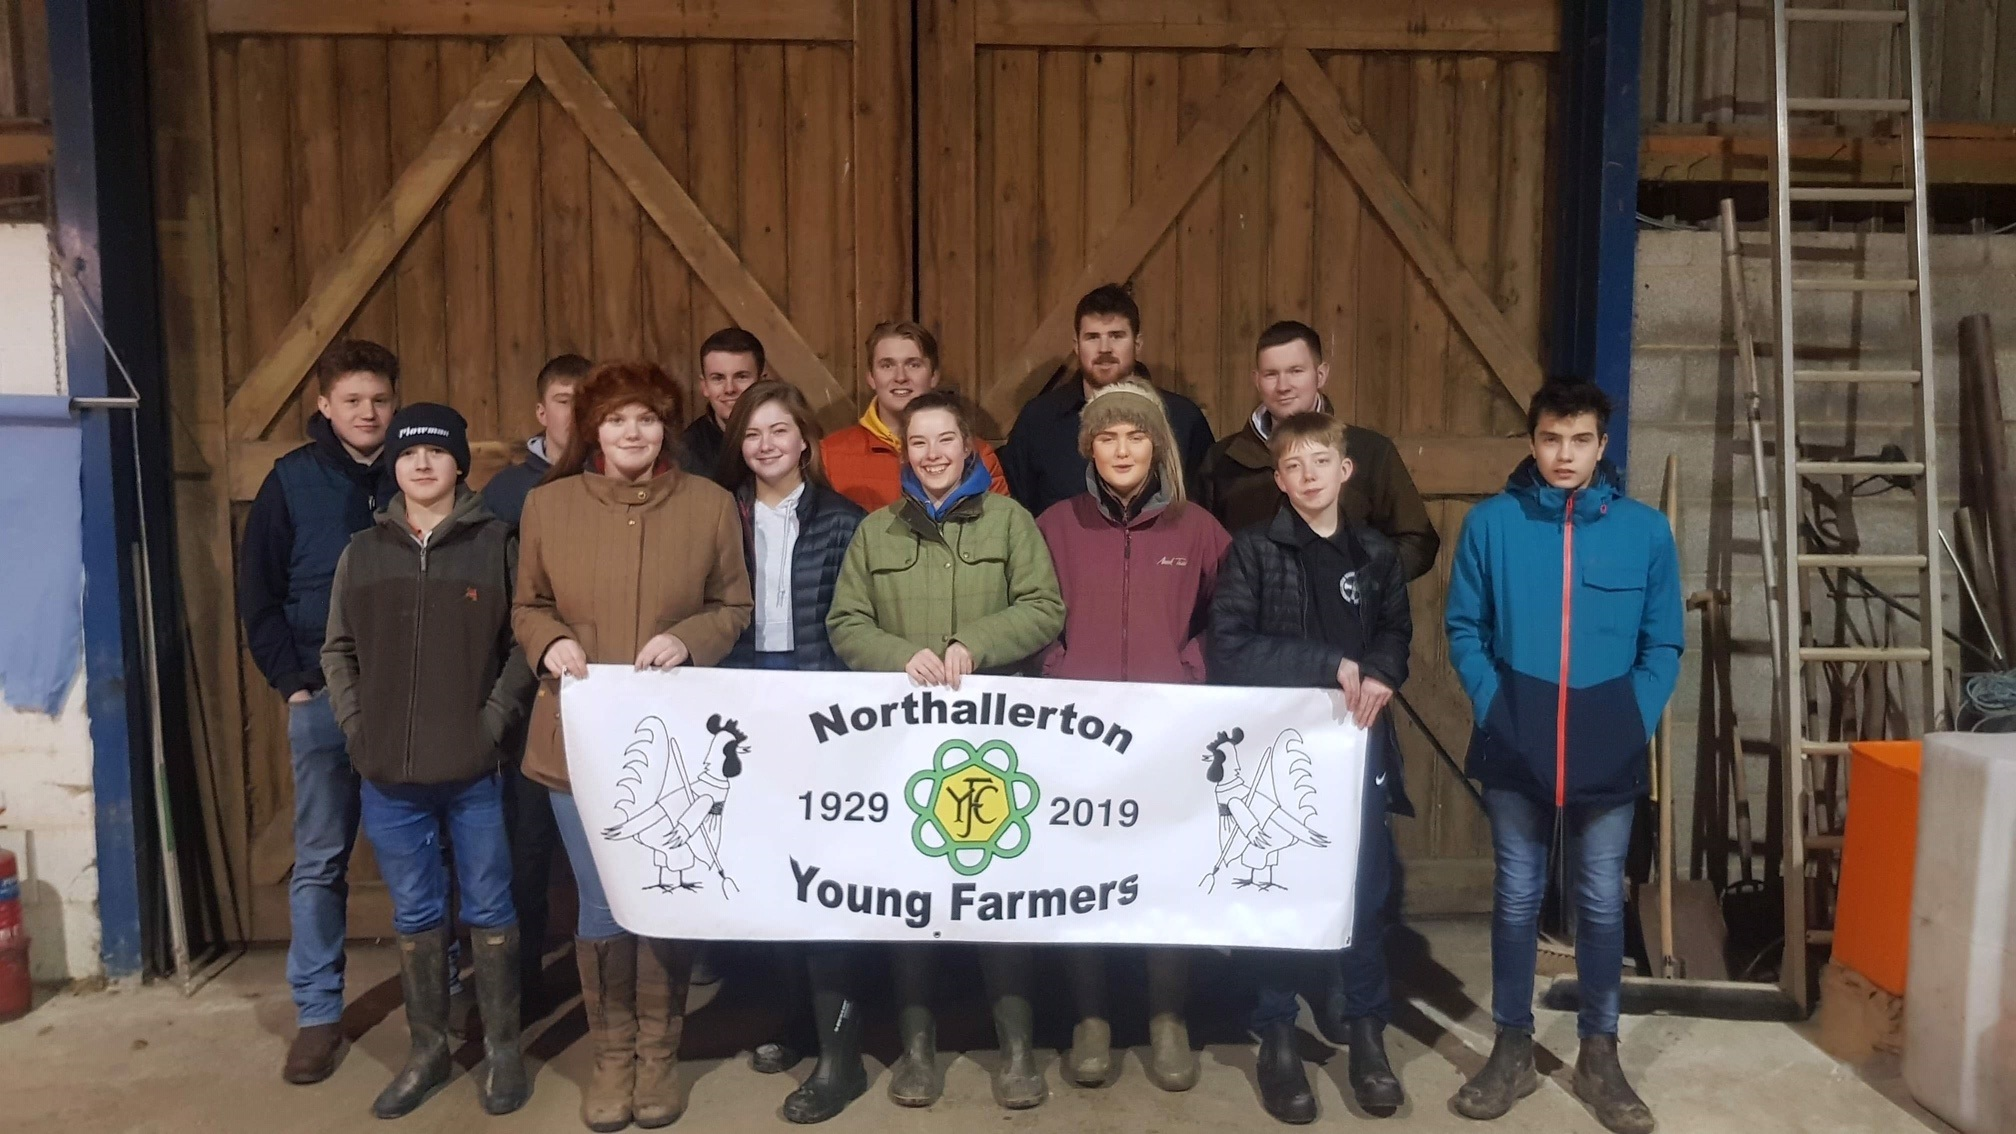 Members of Northallerton Young Farmers' Club